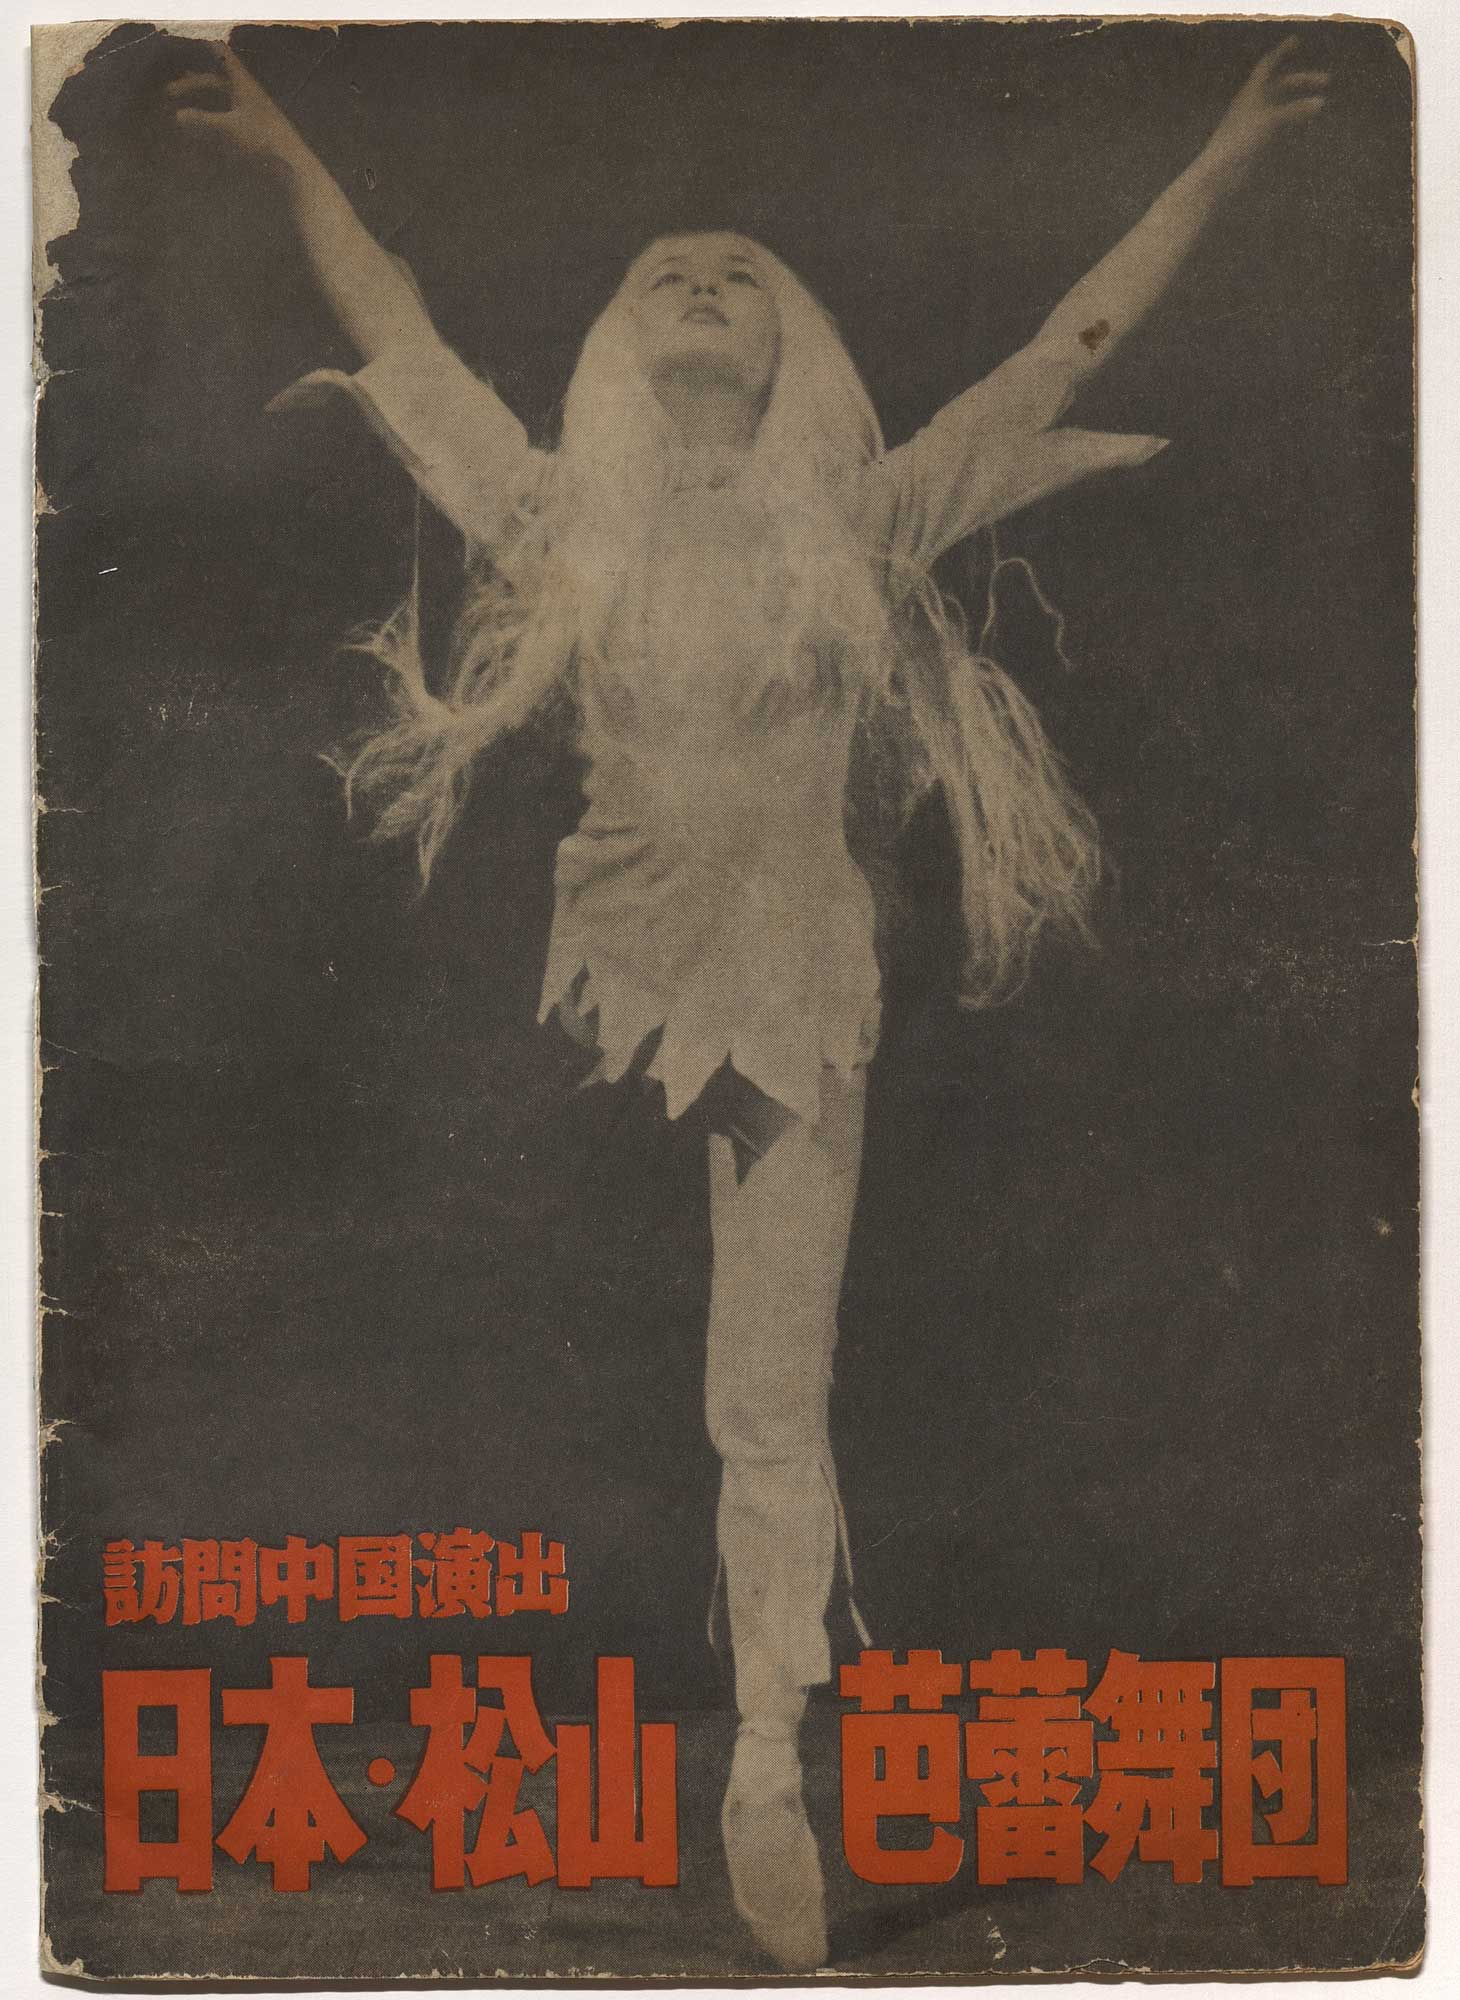 The program of Japanese Matsuyama Ballet's tour in China in 1958